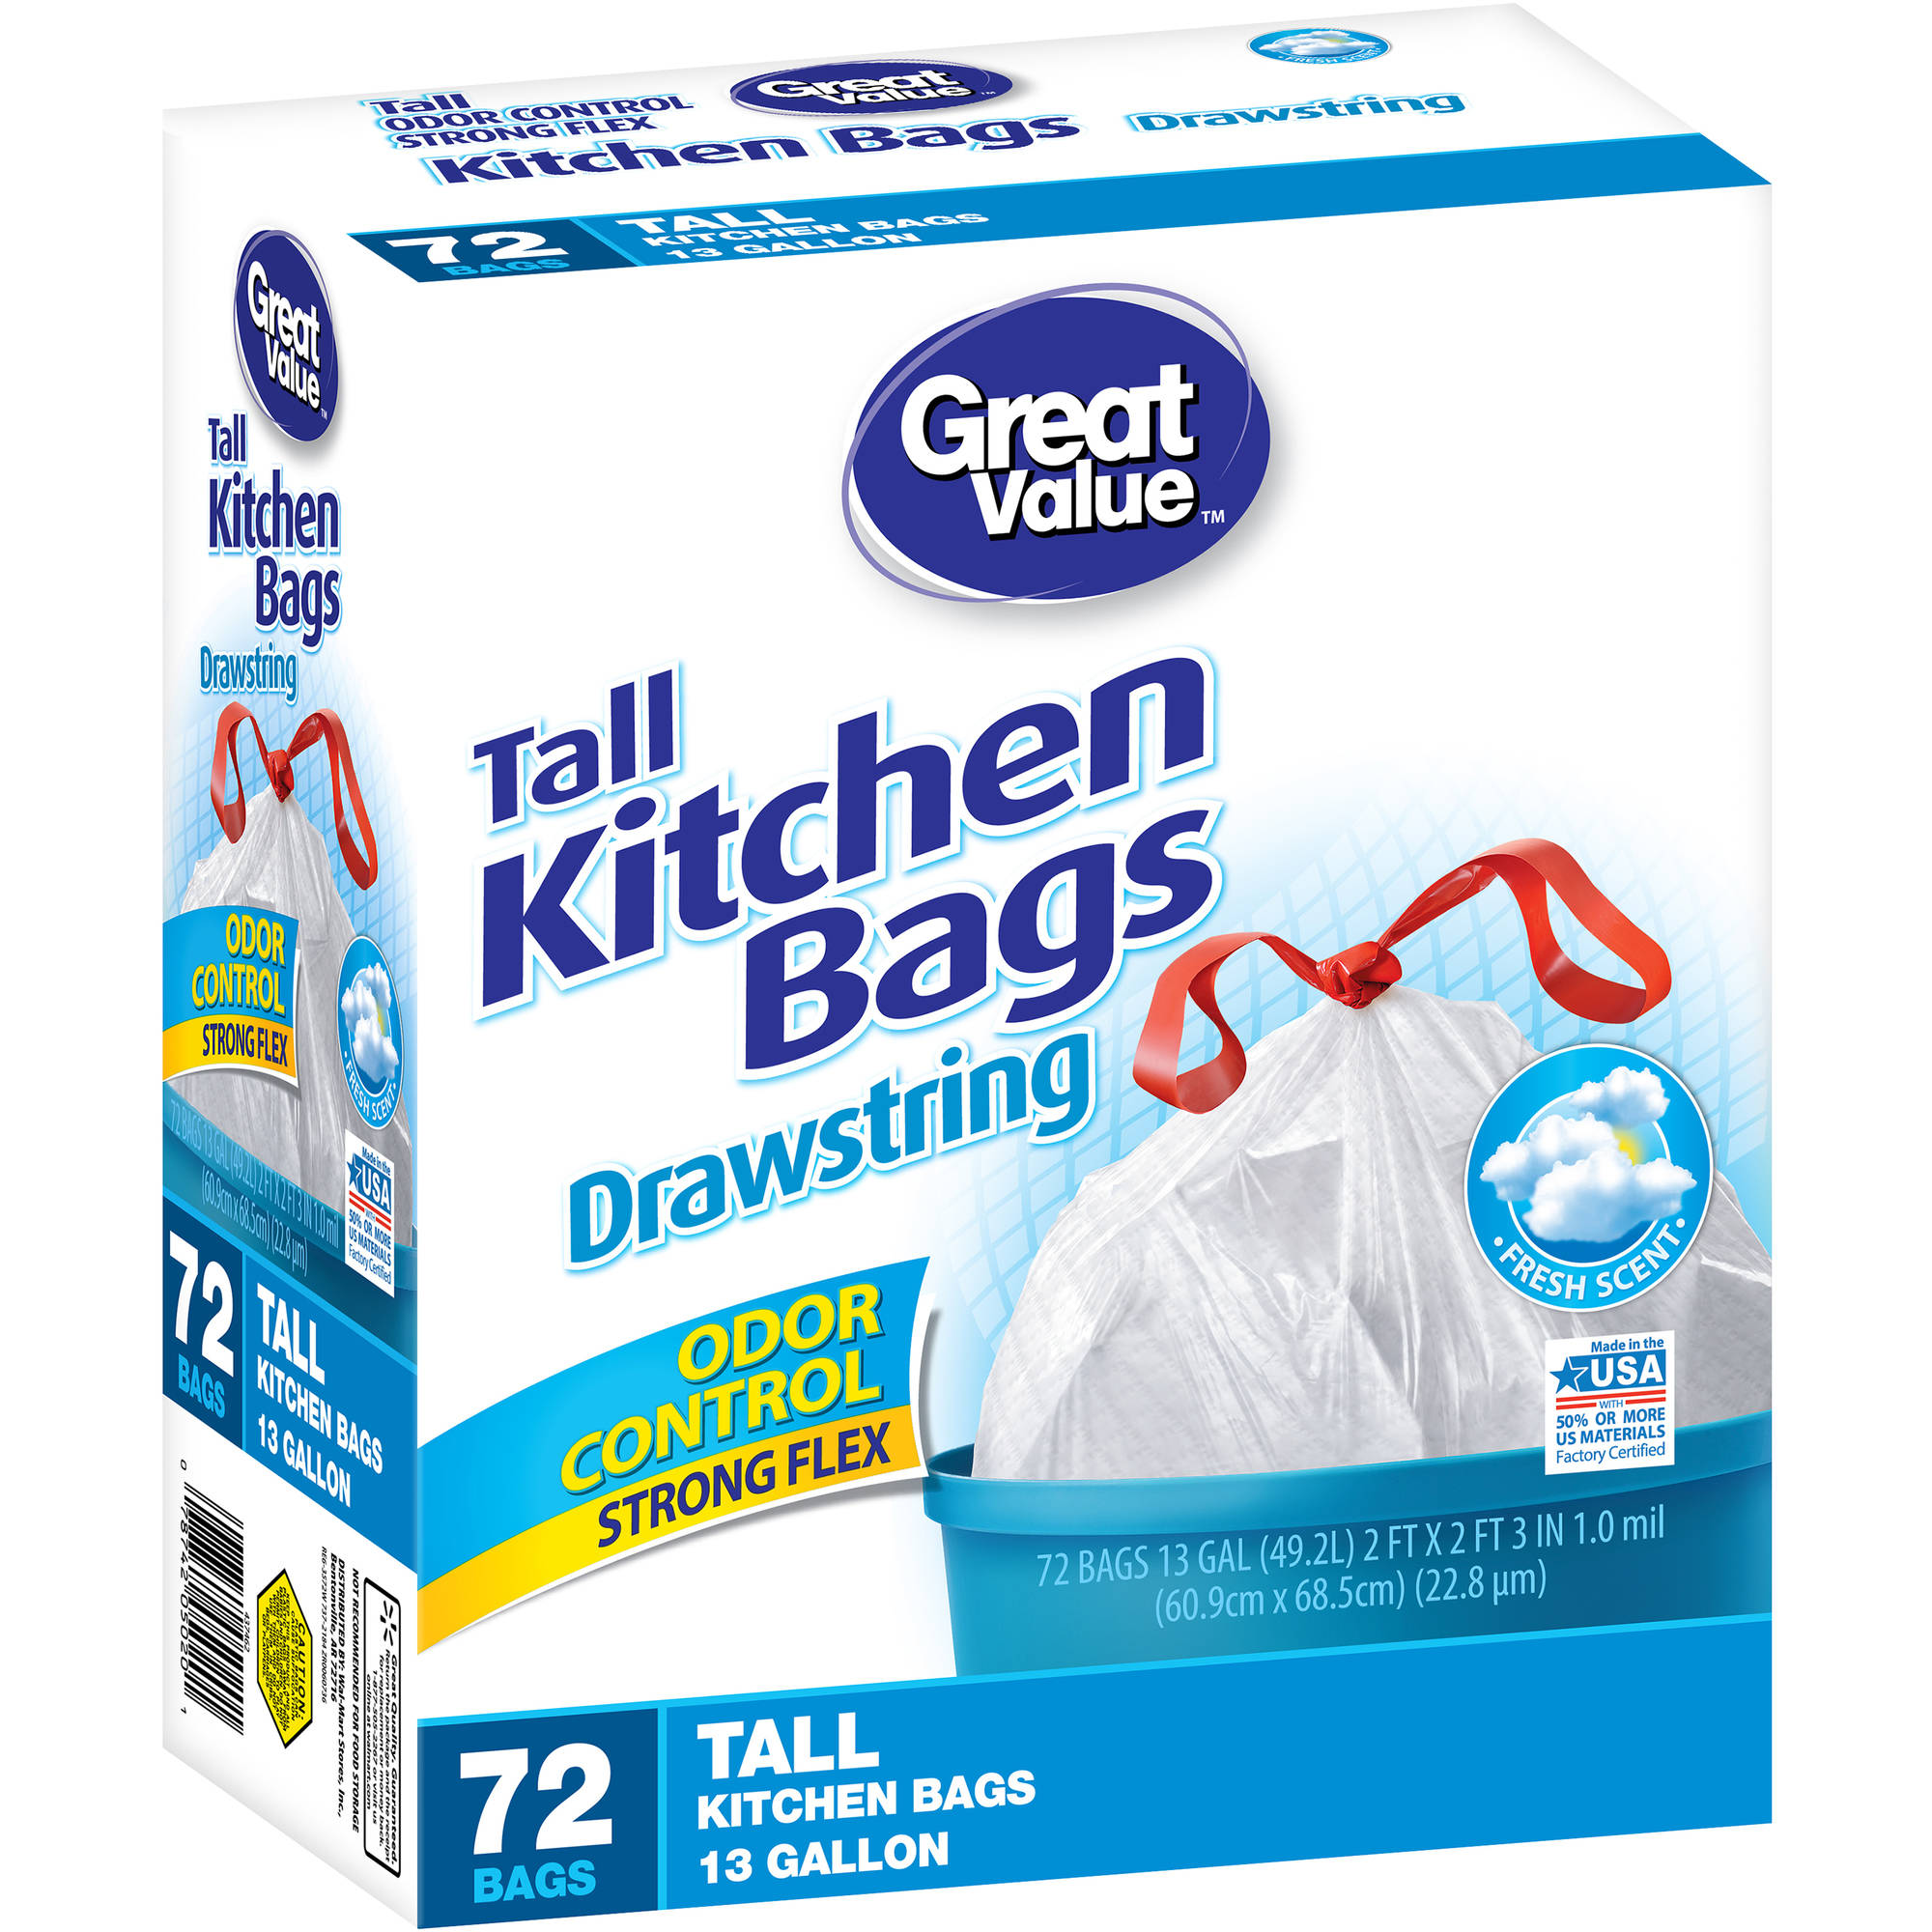 Great Value Fresh Scent Drawstring Tall Kitchen Bags, 13 Gallon, 72 ct